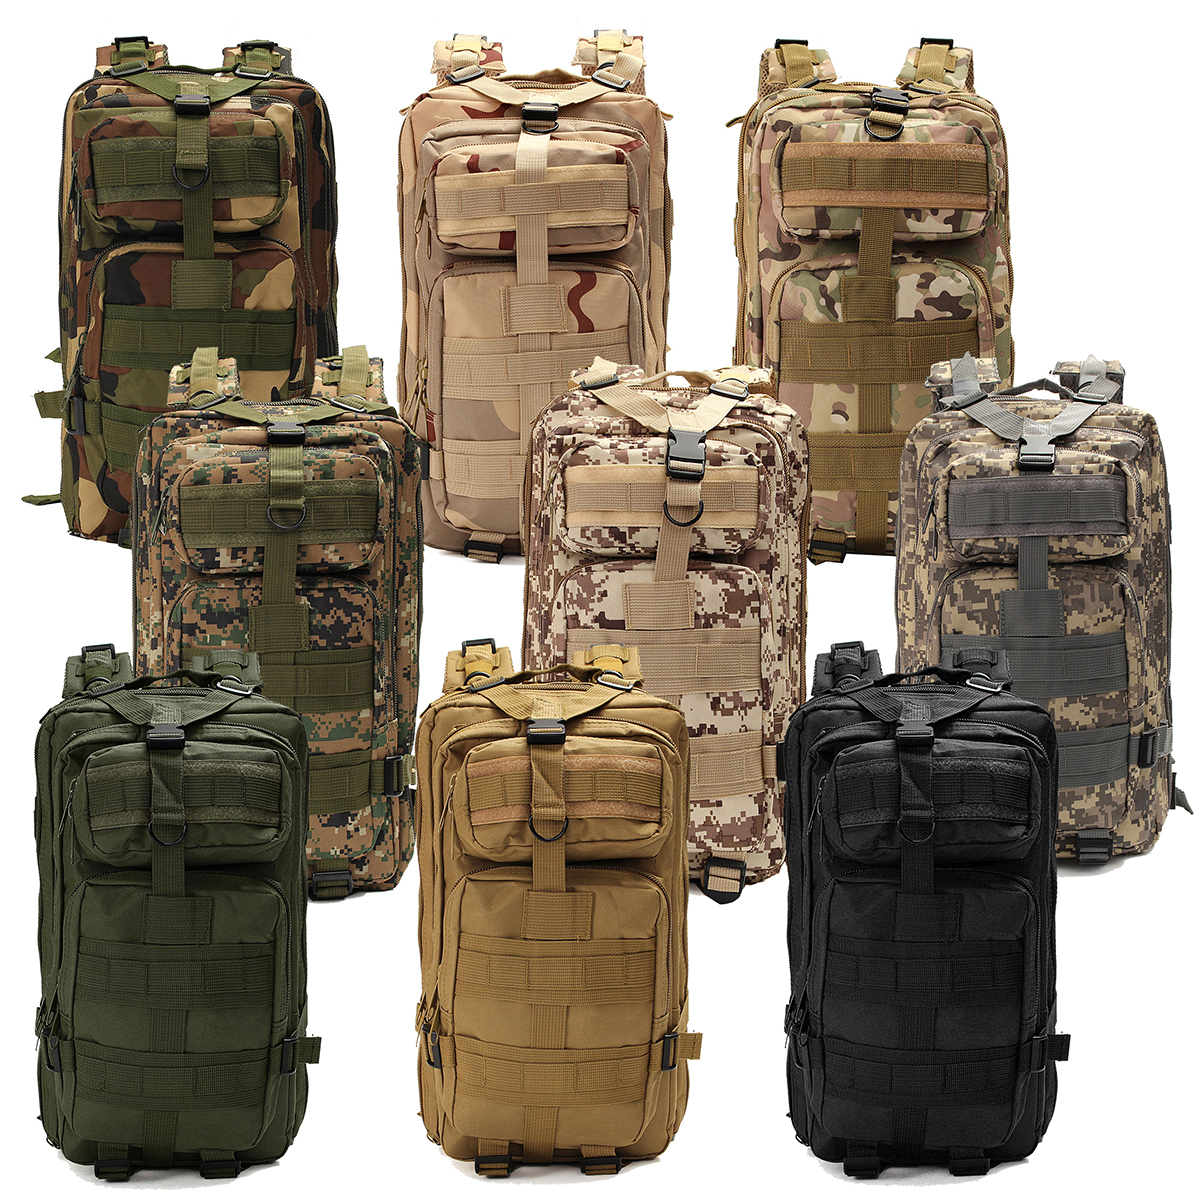 30L Military Tactical Army Backpack Rucksack Camping Hiking Trekking Outdoor Bag